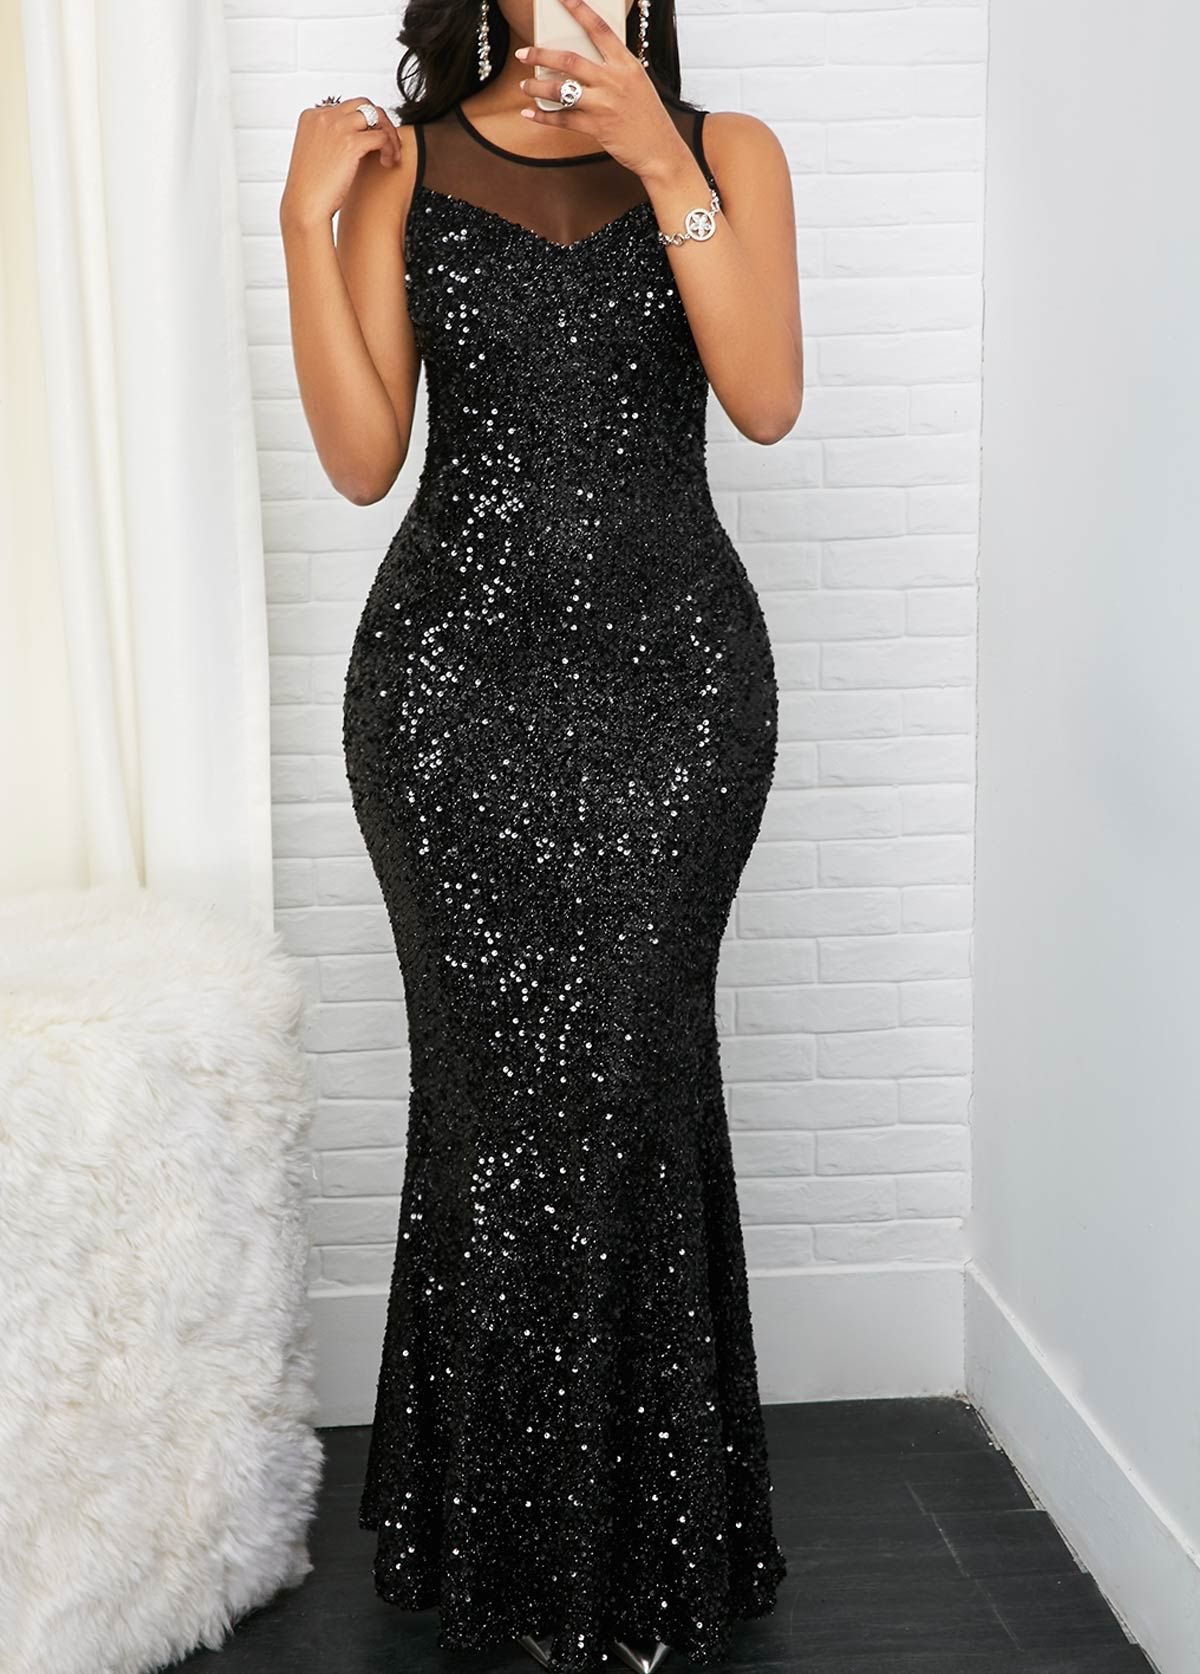 68fa3428eff Sleeveless Black Mesh Panel Sequin Maxi Dress